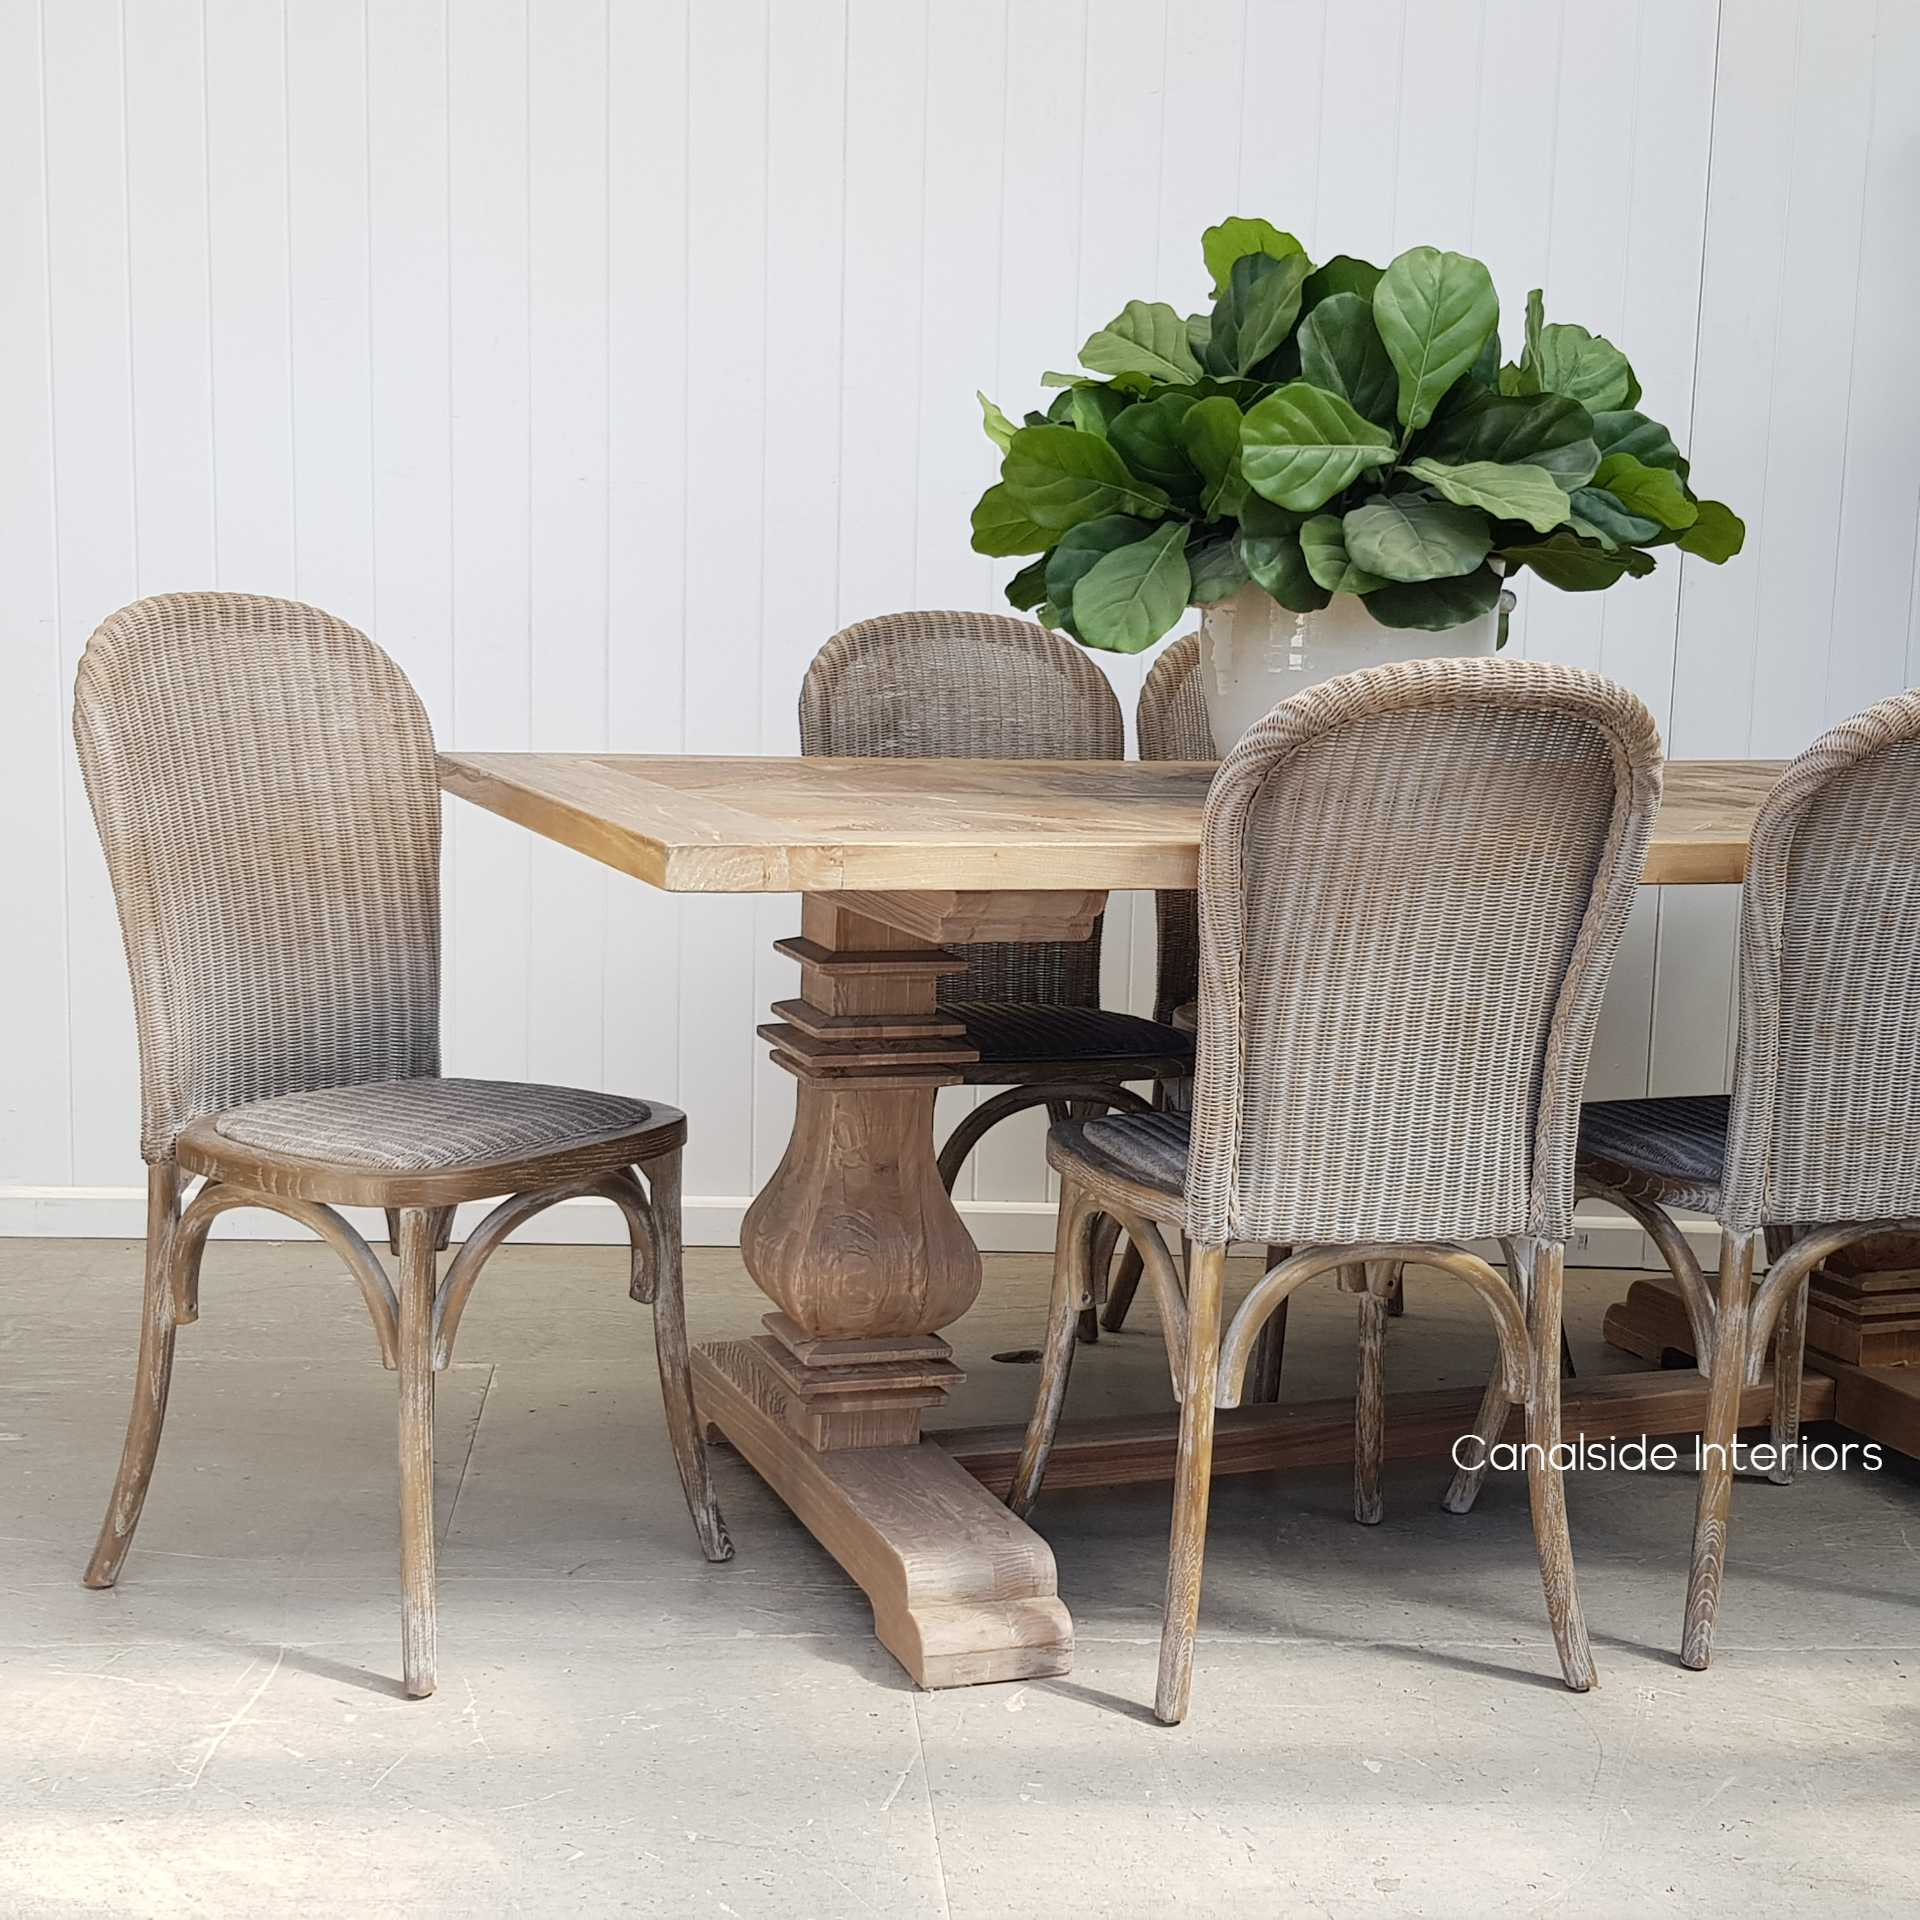 Cape Colony Chair Weathered Oak  Dining, CHAIRS, CAFE FURNITURE, HAMPTONS Style, PLANTATION Style, CHAIRS Dining, CAFE FURNITURE Stools & Chairs, PLANTATION STYLE